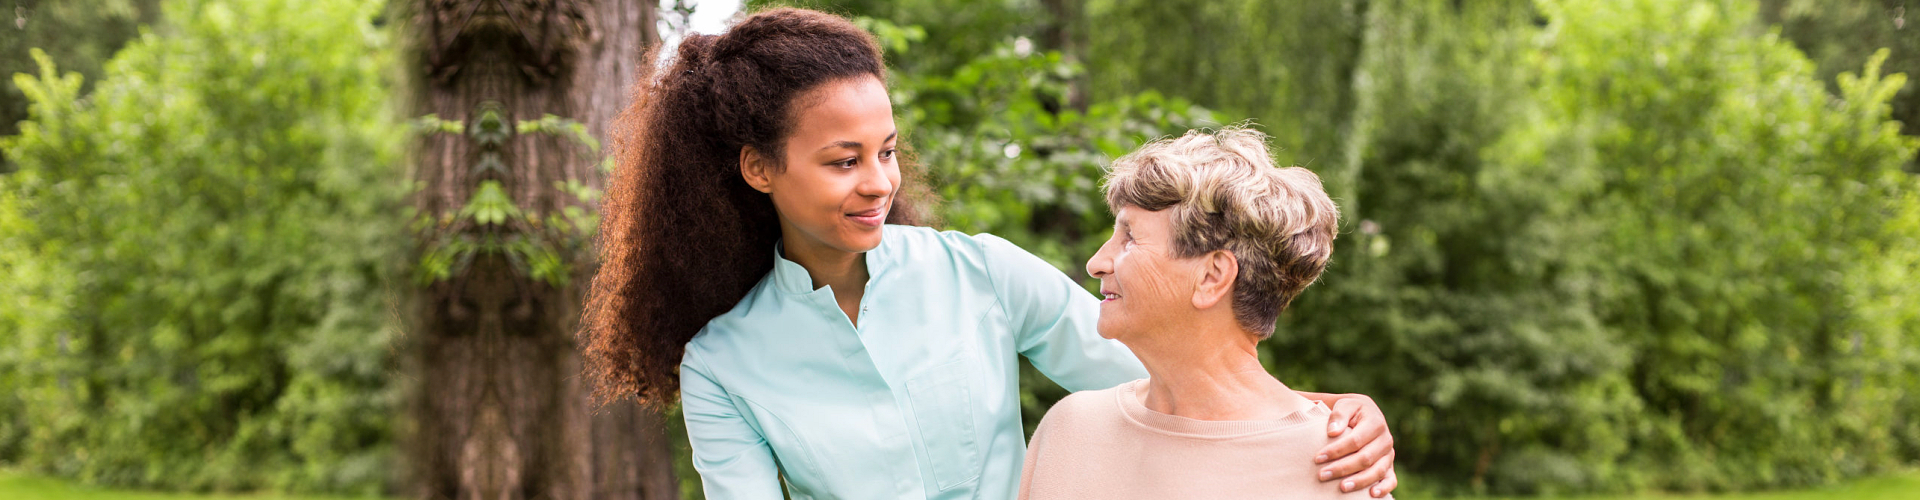 an elderly woman and her caregiver taking a walk outdoors